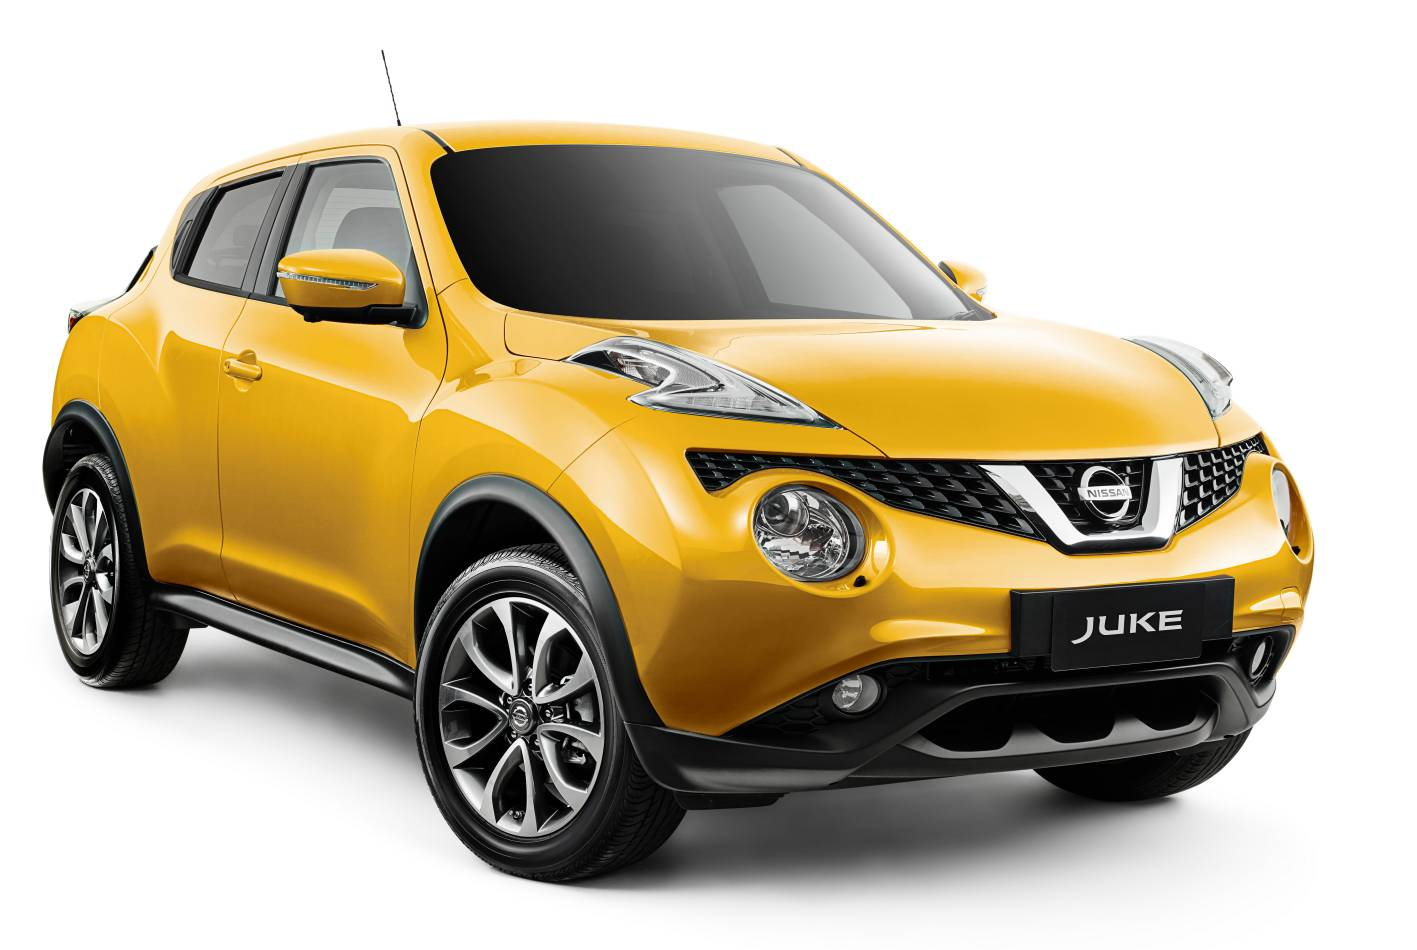 News 2015 Nissan Juke Price And Specs